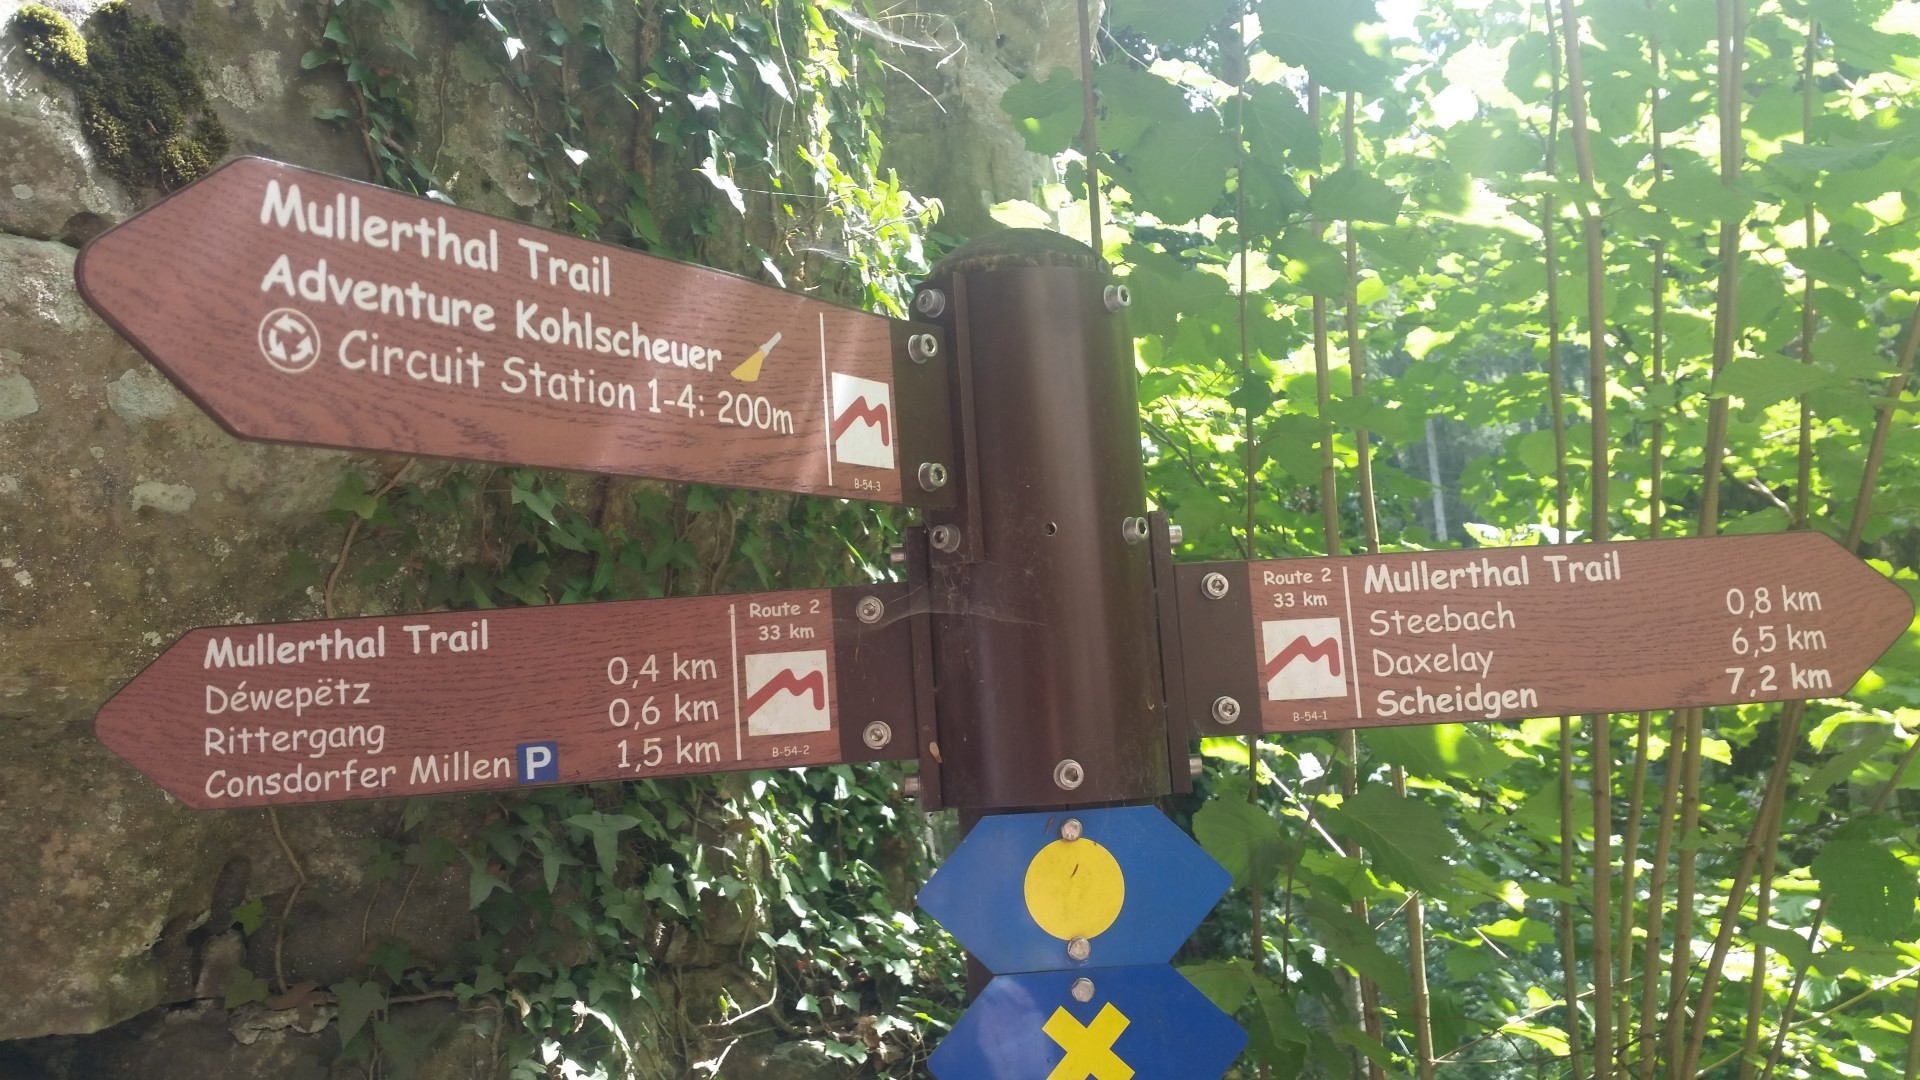 Müllerthal Trail Route 2 Luxembourg (2015-07-24)